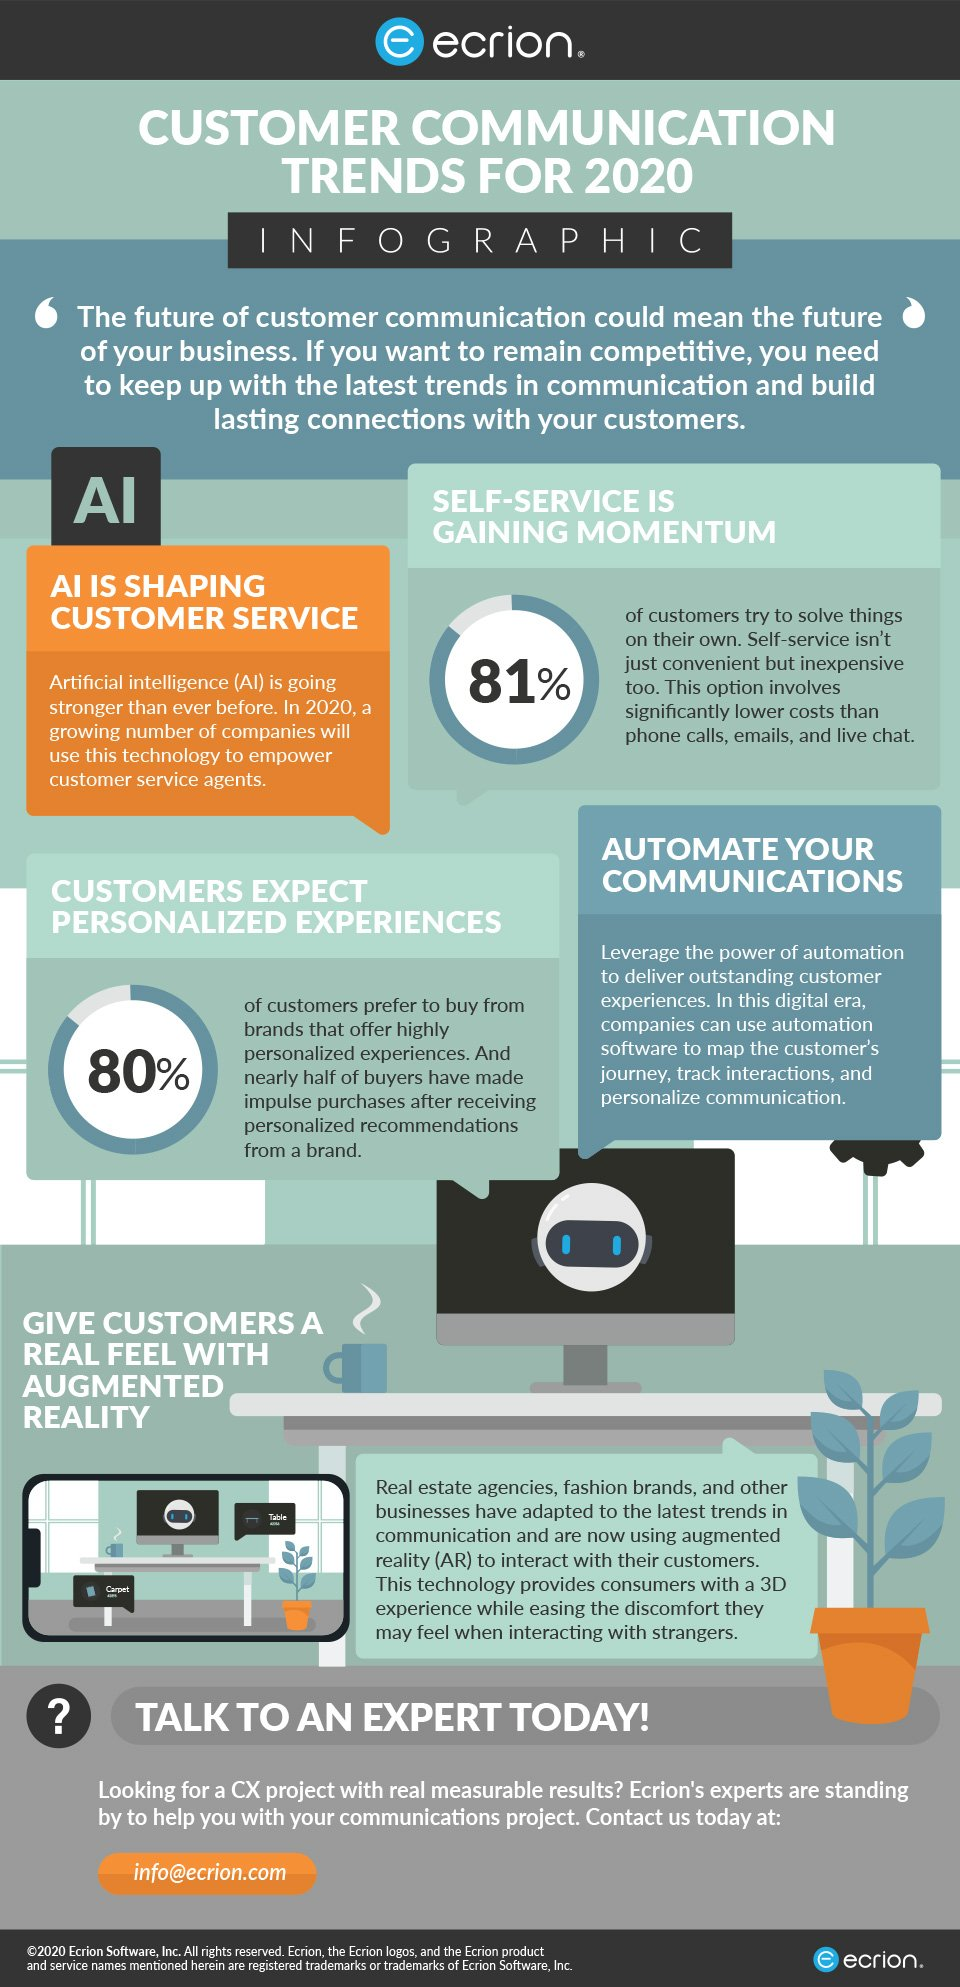 Customer communication trends for 2020 - Infographic